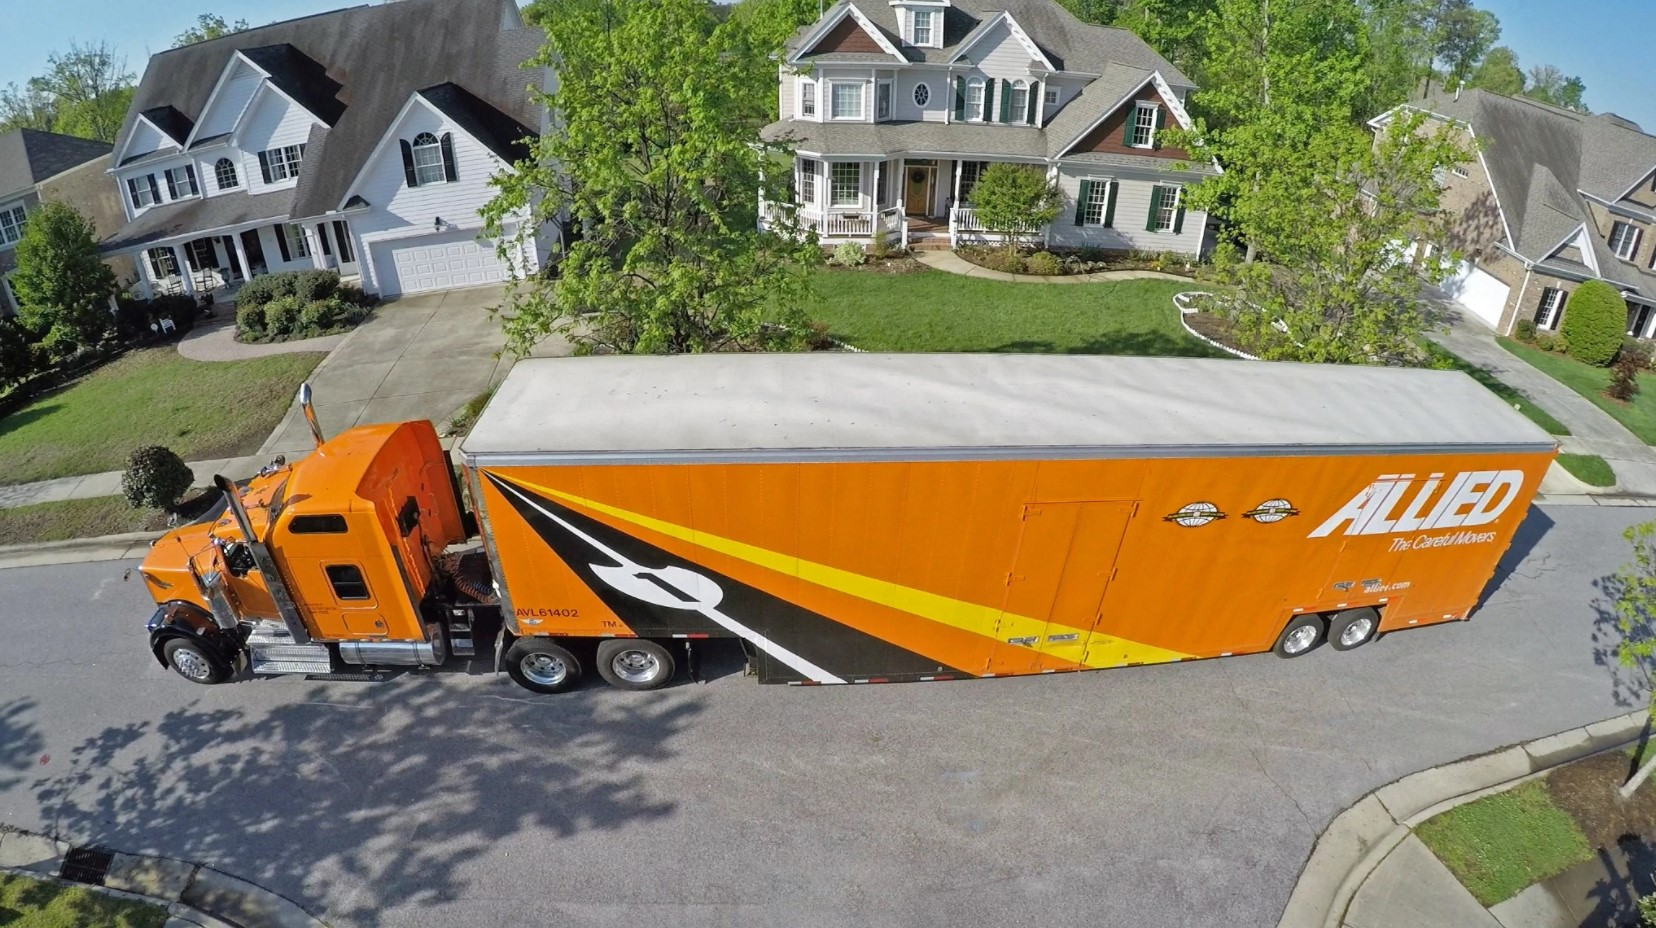 Allied Moving Truck Parked in Front of a Home Top View